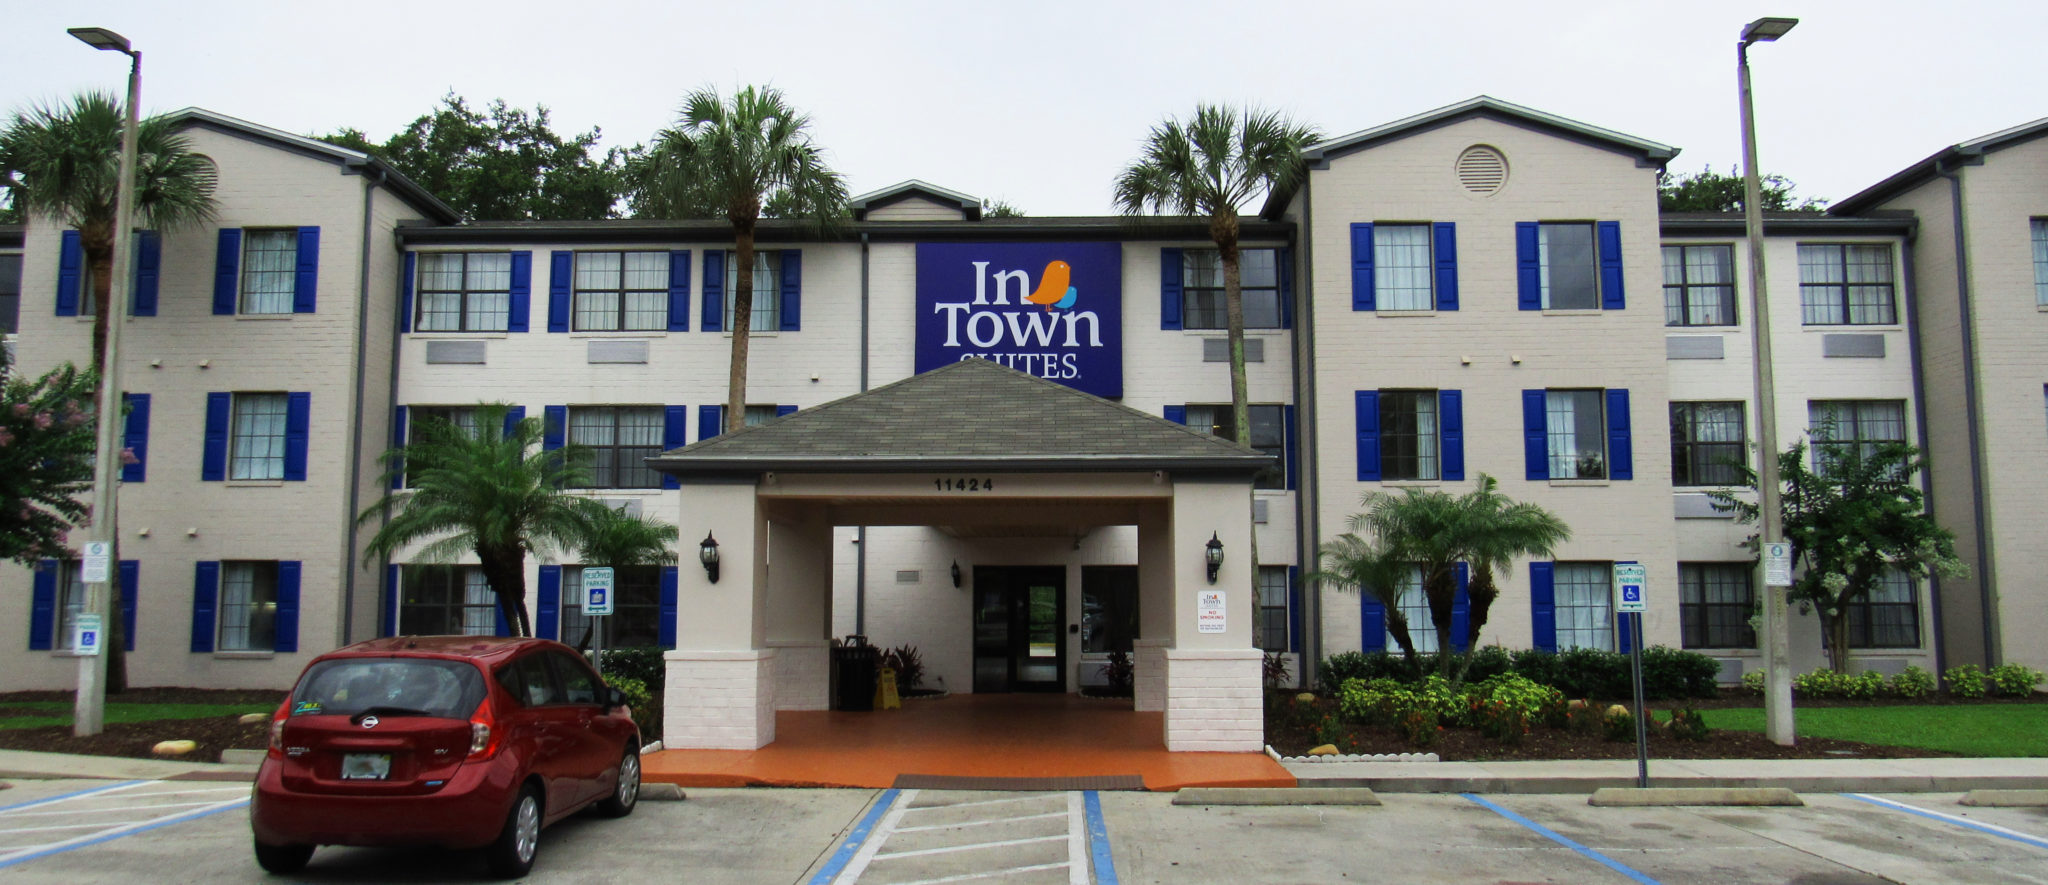 InTown Suites Extended Stay Orlando FL - University Blvd UCF